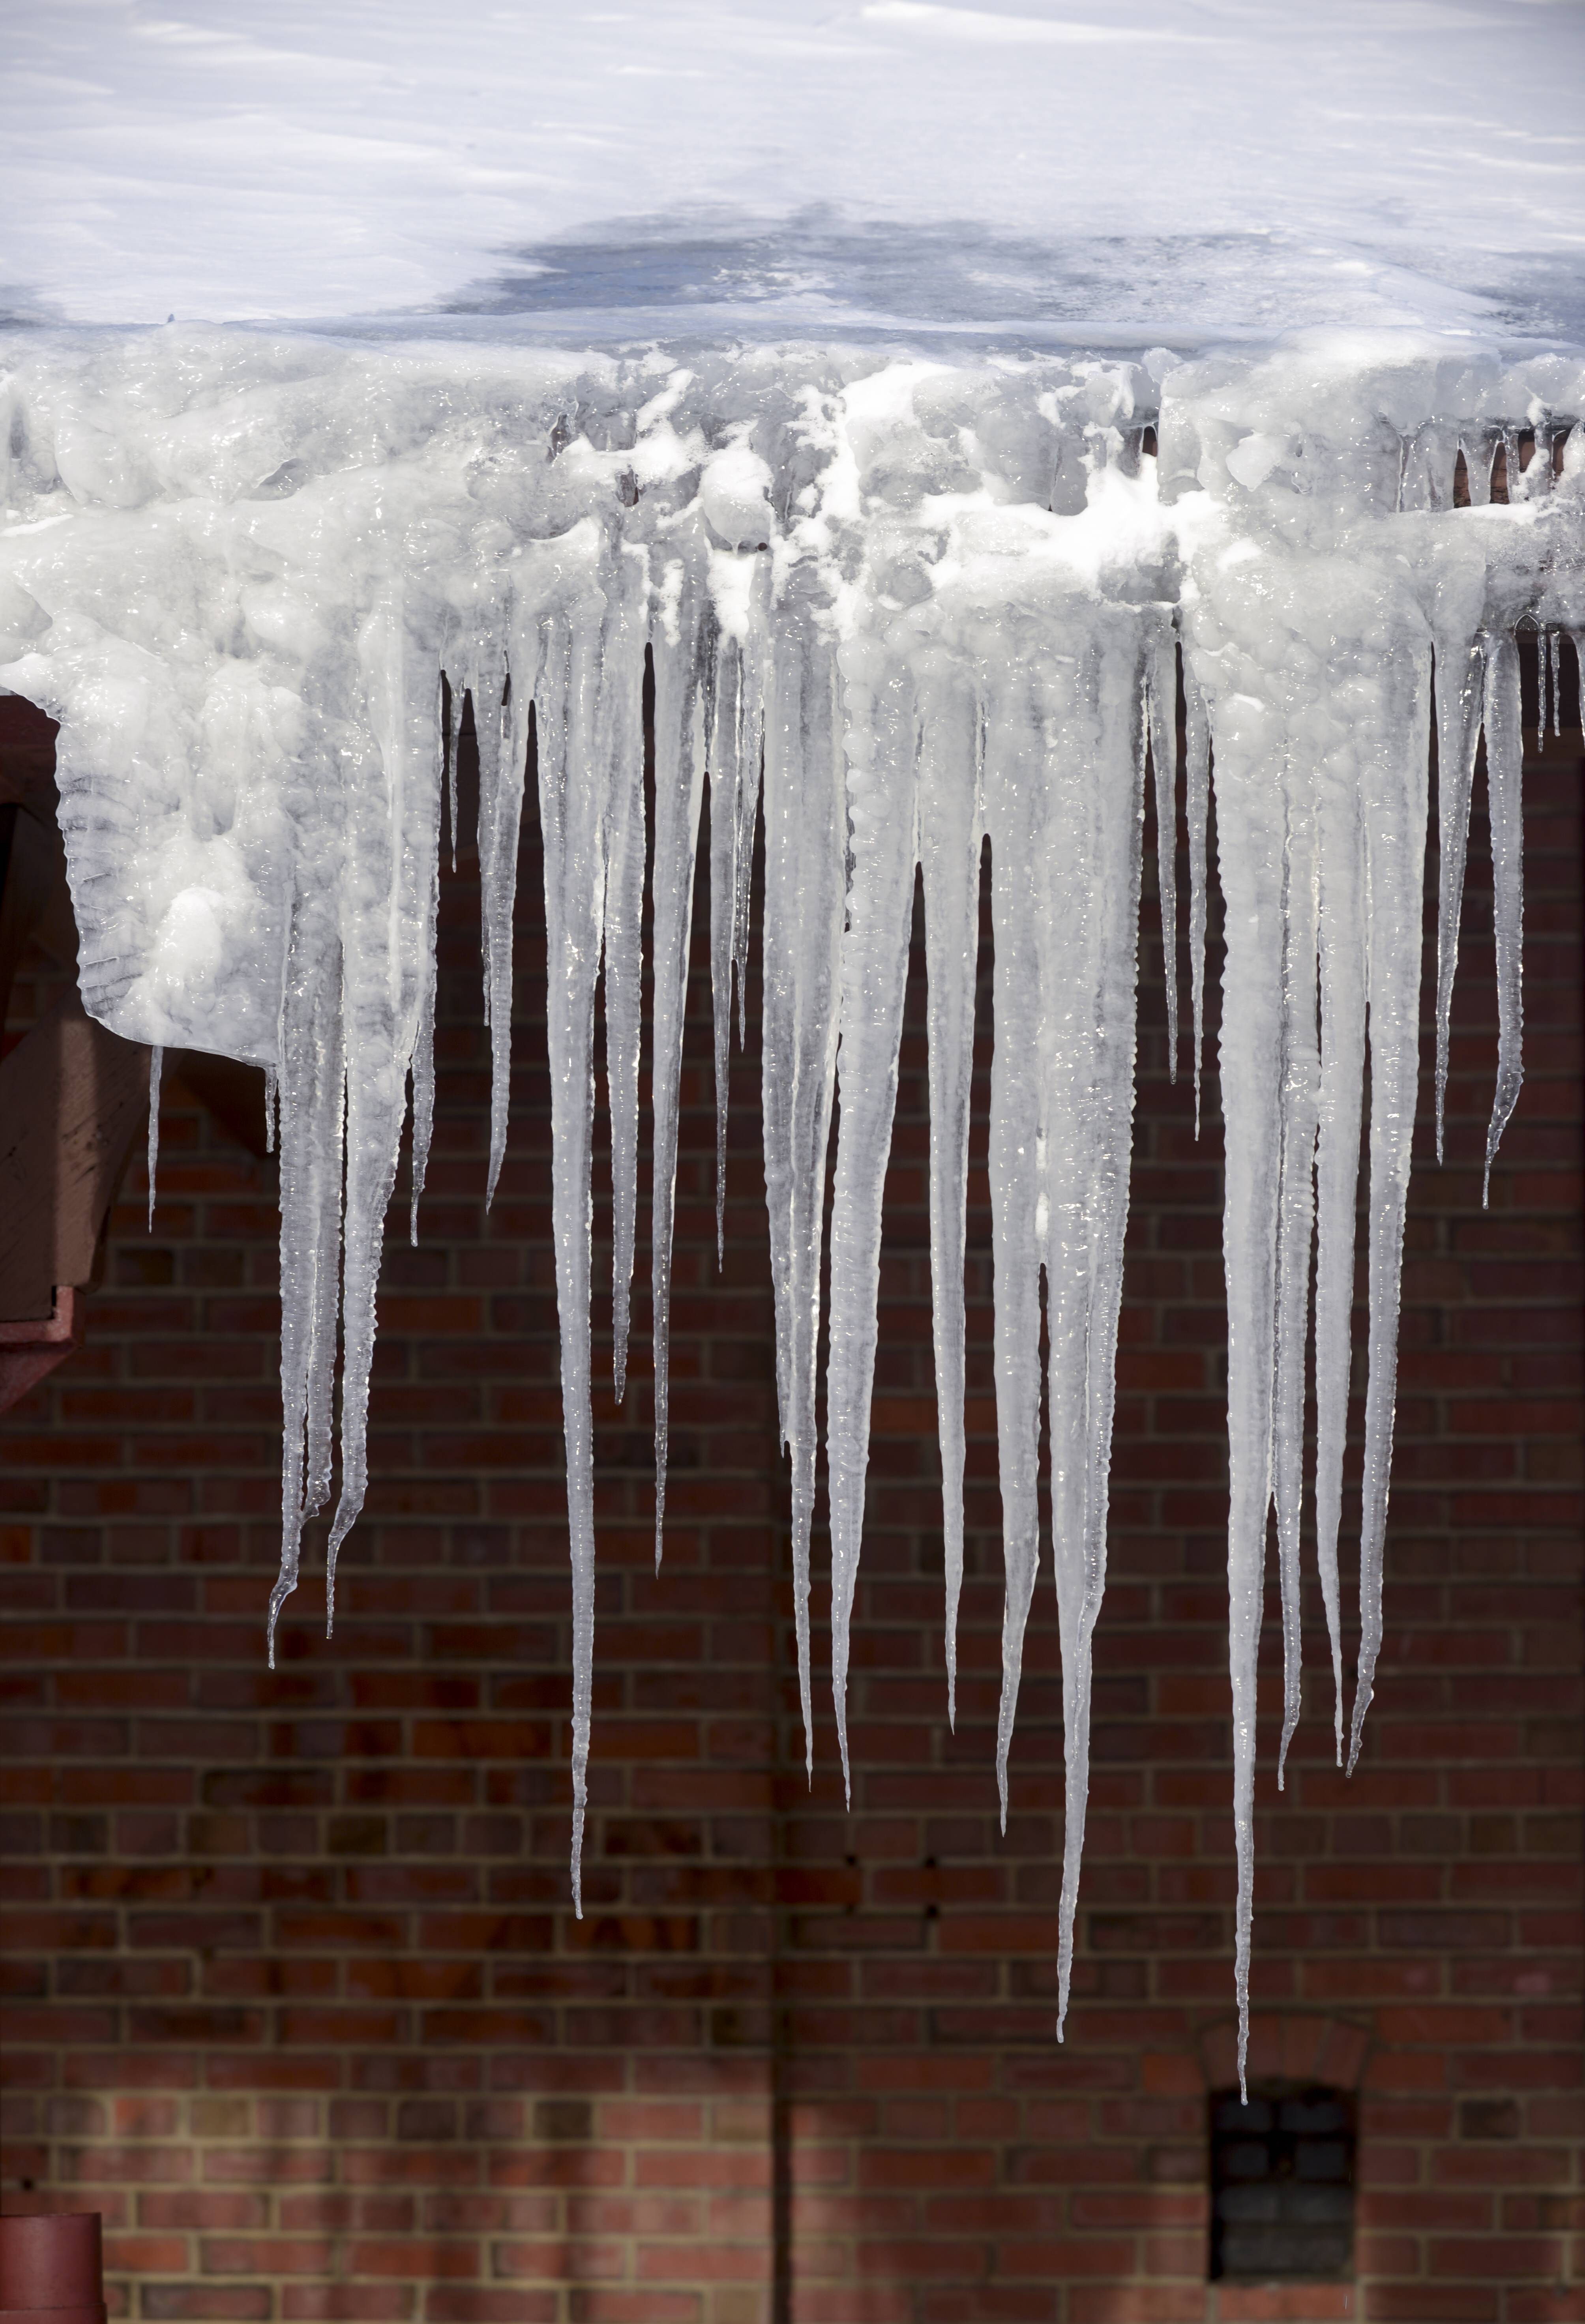 Icicles hang from the roof of the Wayne and Helen Fox Community Center in West Chicago.